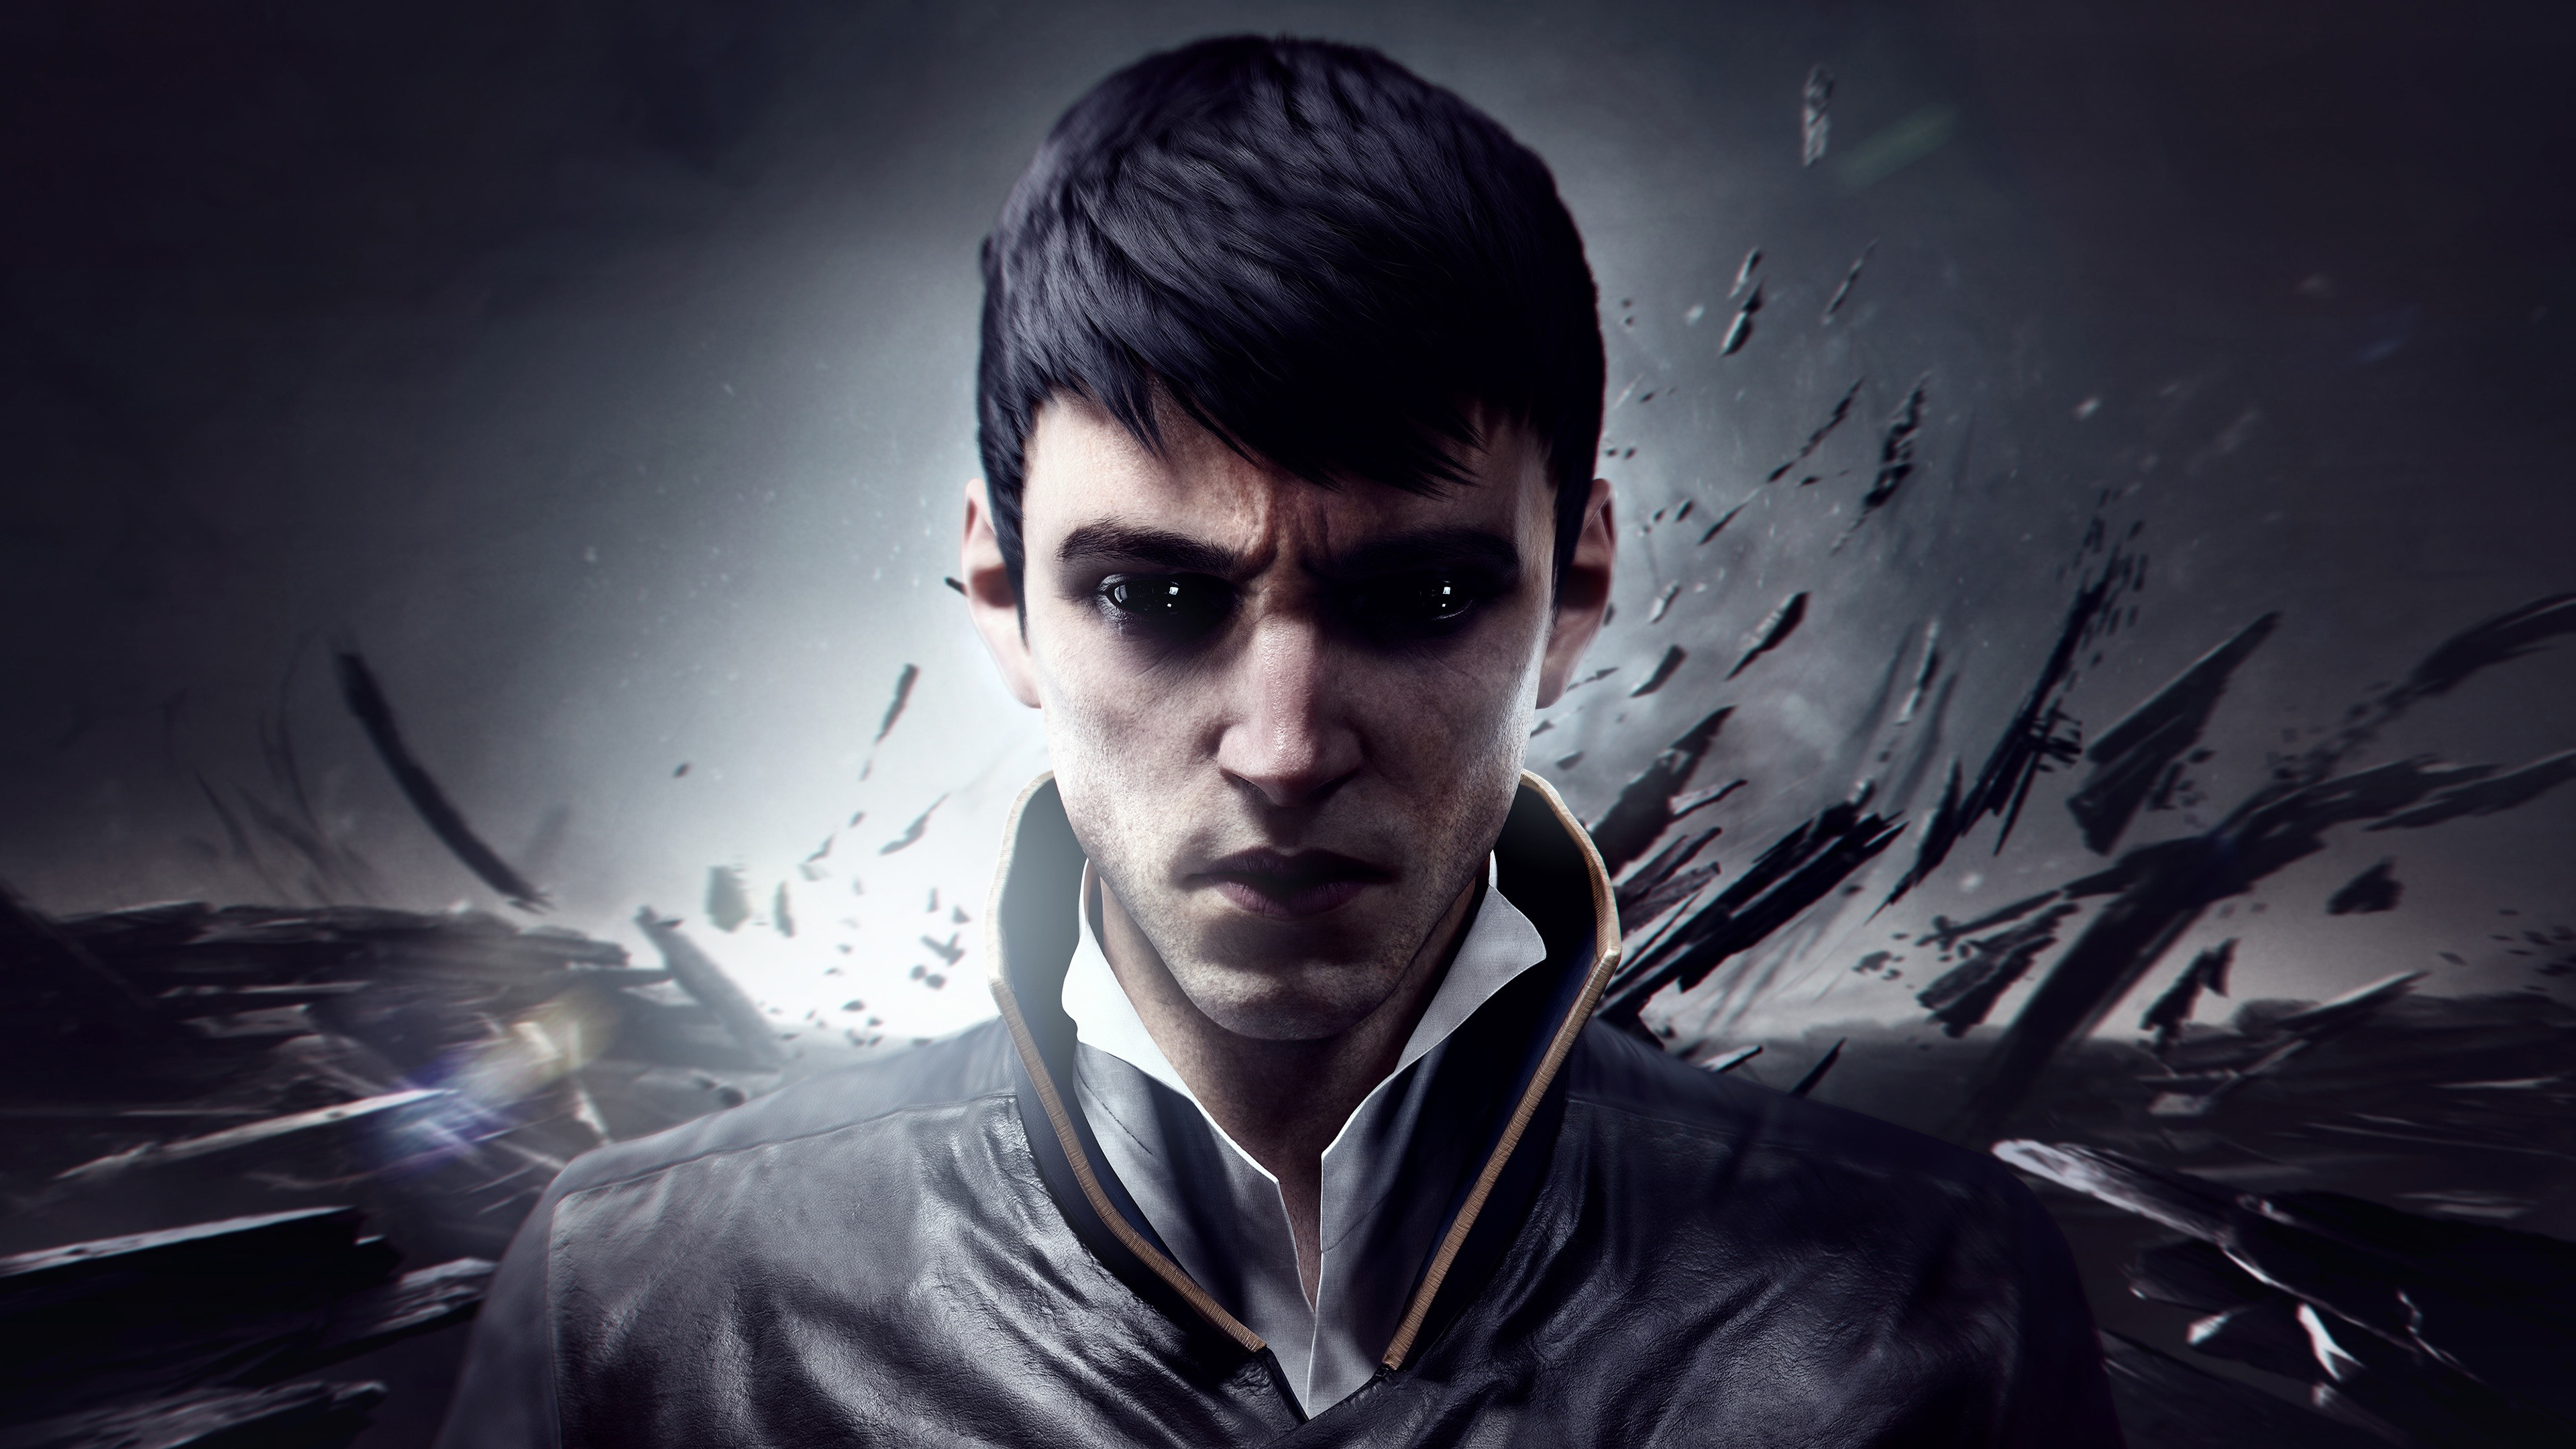 22+ Dishonored 2 Wallpaper Hd Pics